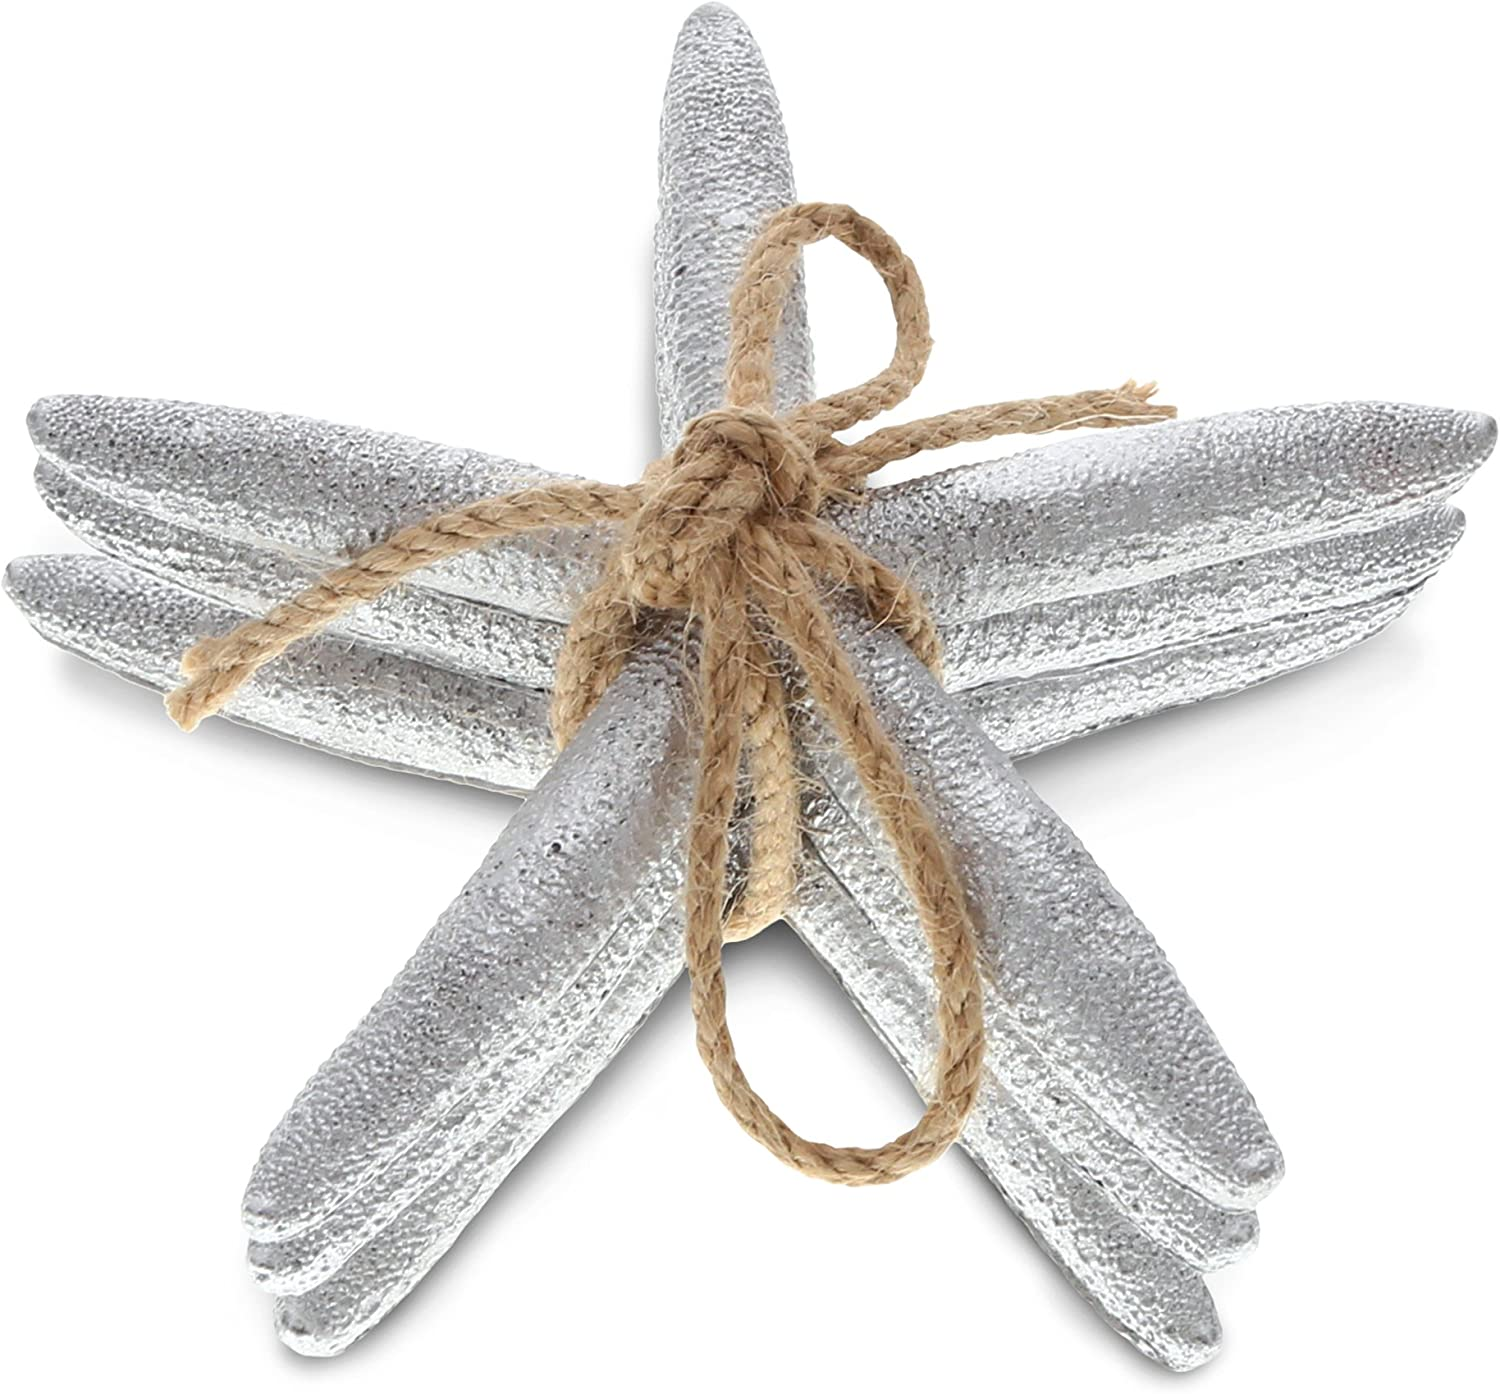 CoTa Global Silver Starfish Ornaments in Twine, 5 inch, Tabletop Figurines Resin Art Handcrafted Decoration Figure Nautical Coastal Beachy Ocean Sea Life Crafts Home Accent Decor (3pc Set)